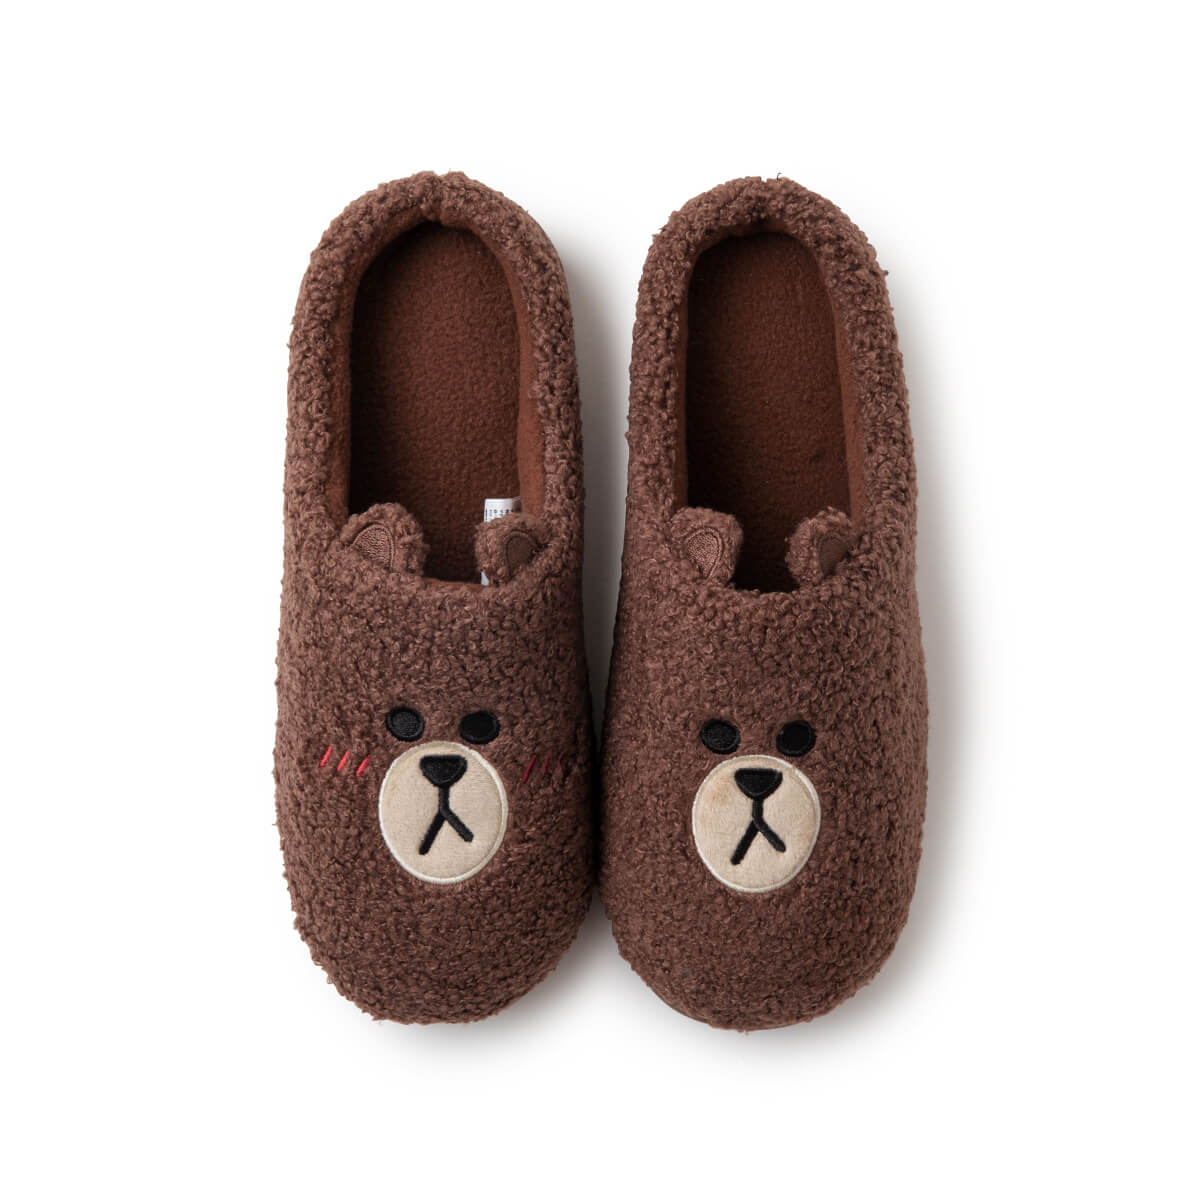 BROWN Ppogeul Slipper